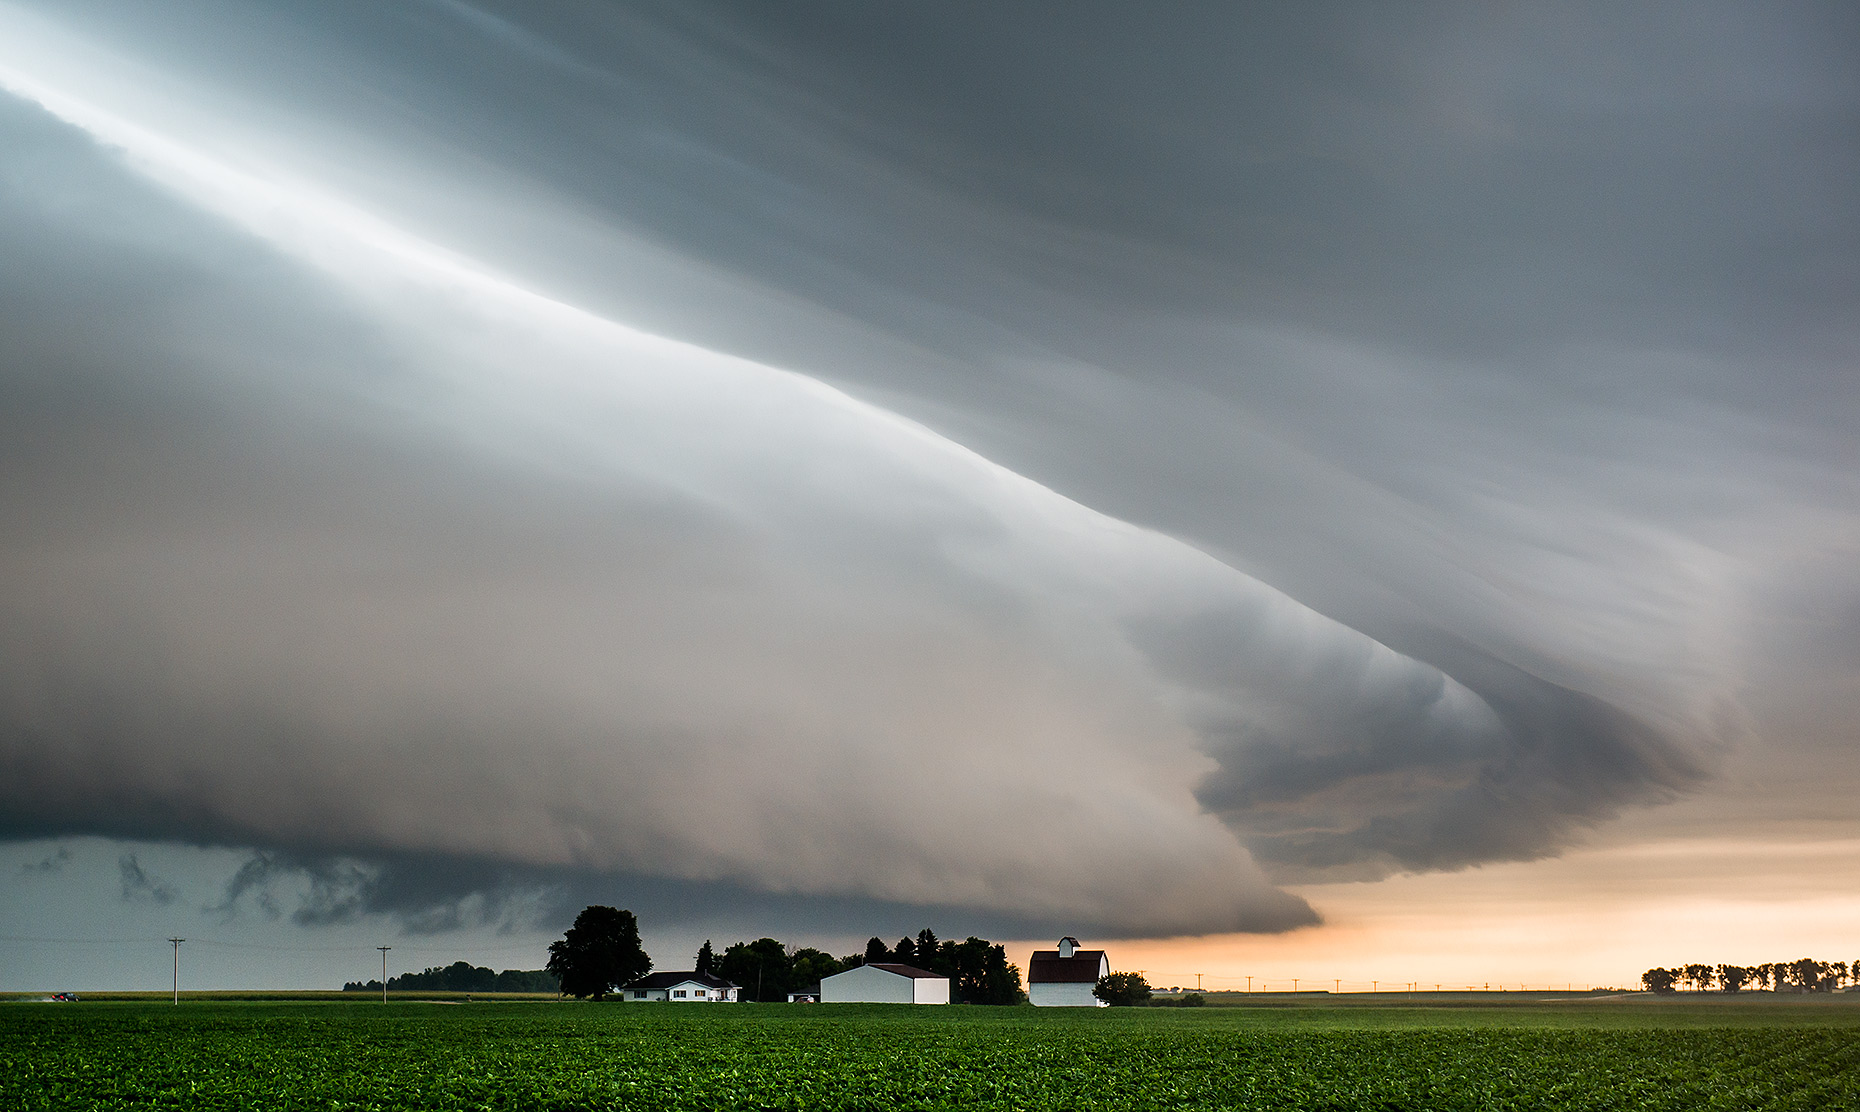 Thunderstorm over Midwest Farm